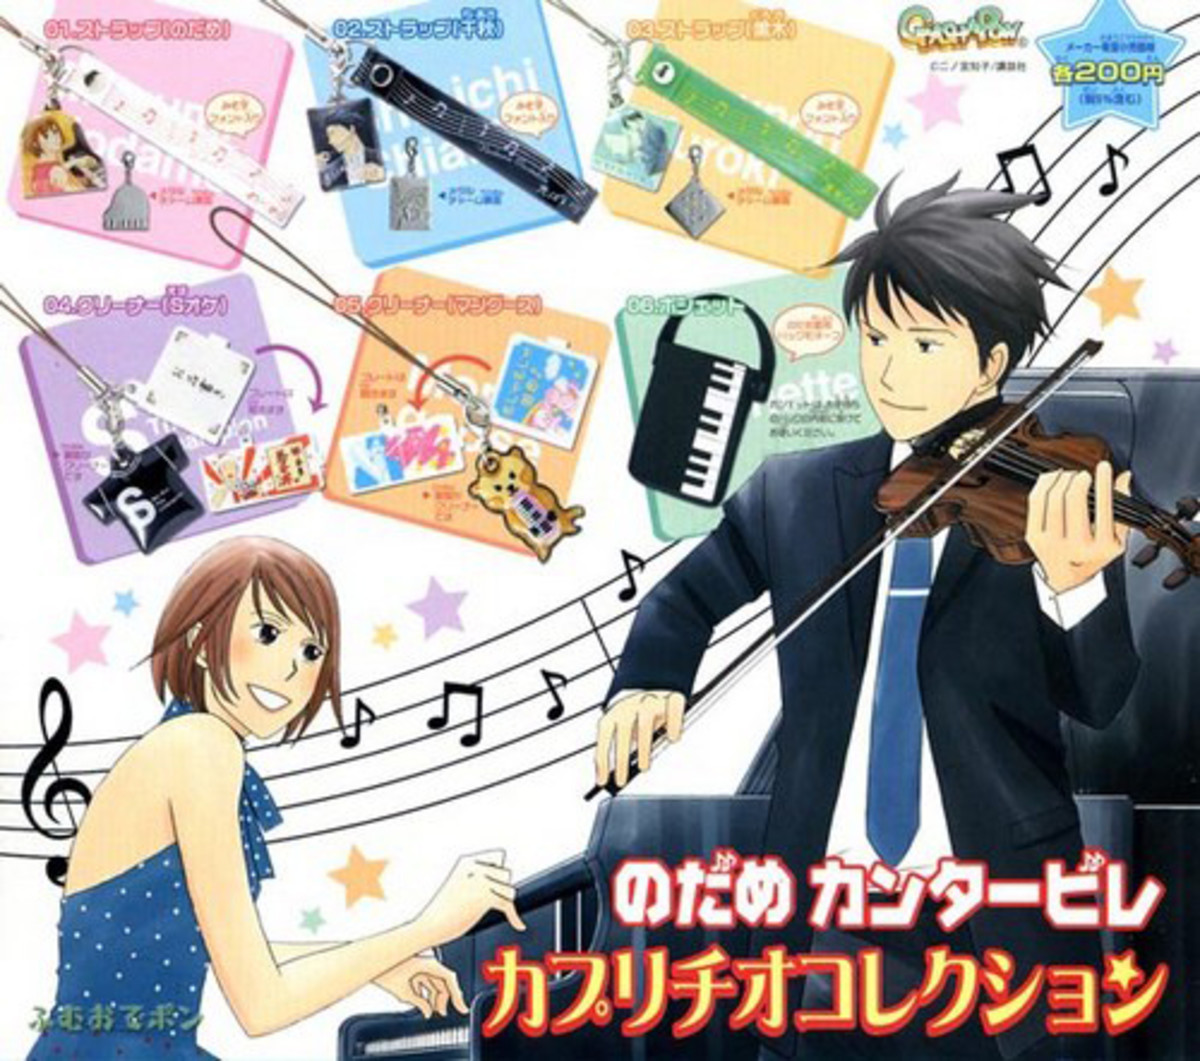 Nodame Cantabile Anime Opening & Ending Theme Songs With Lyrics